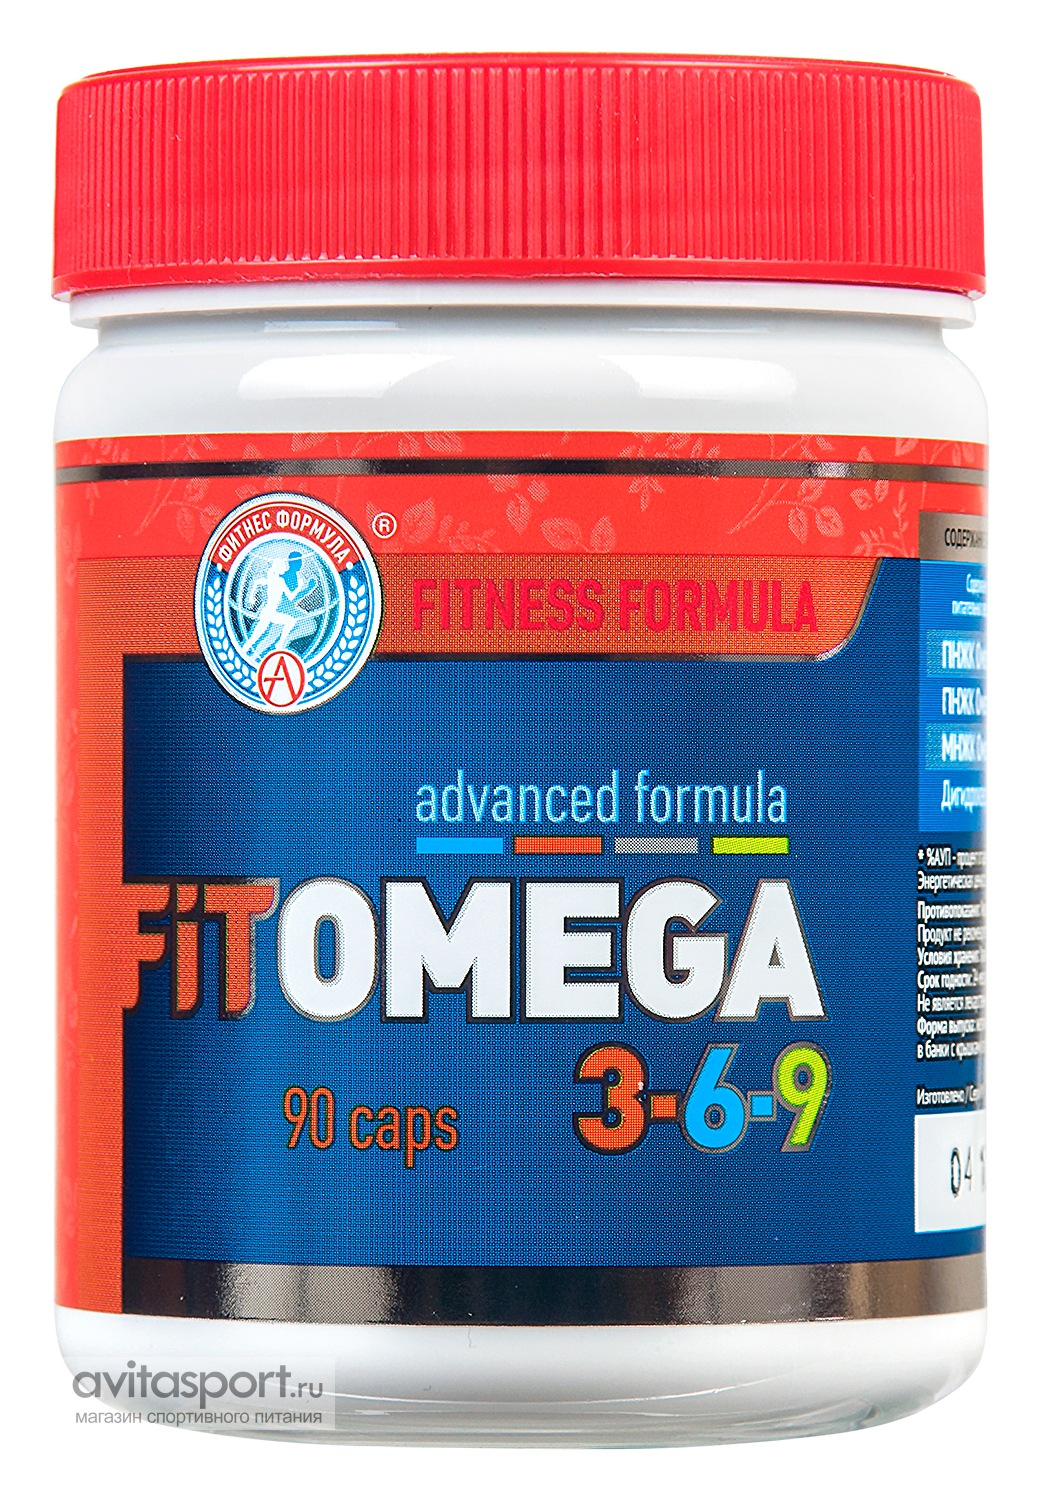 Academy-T Fit Omega 3-6-9 90 капсул